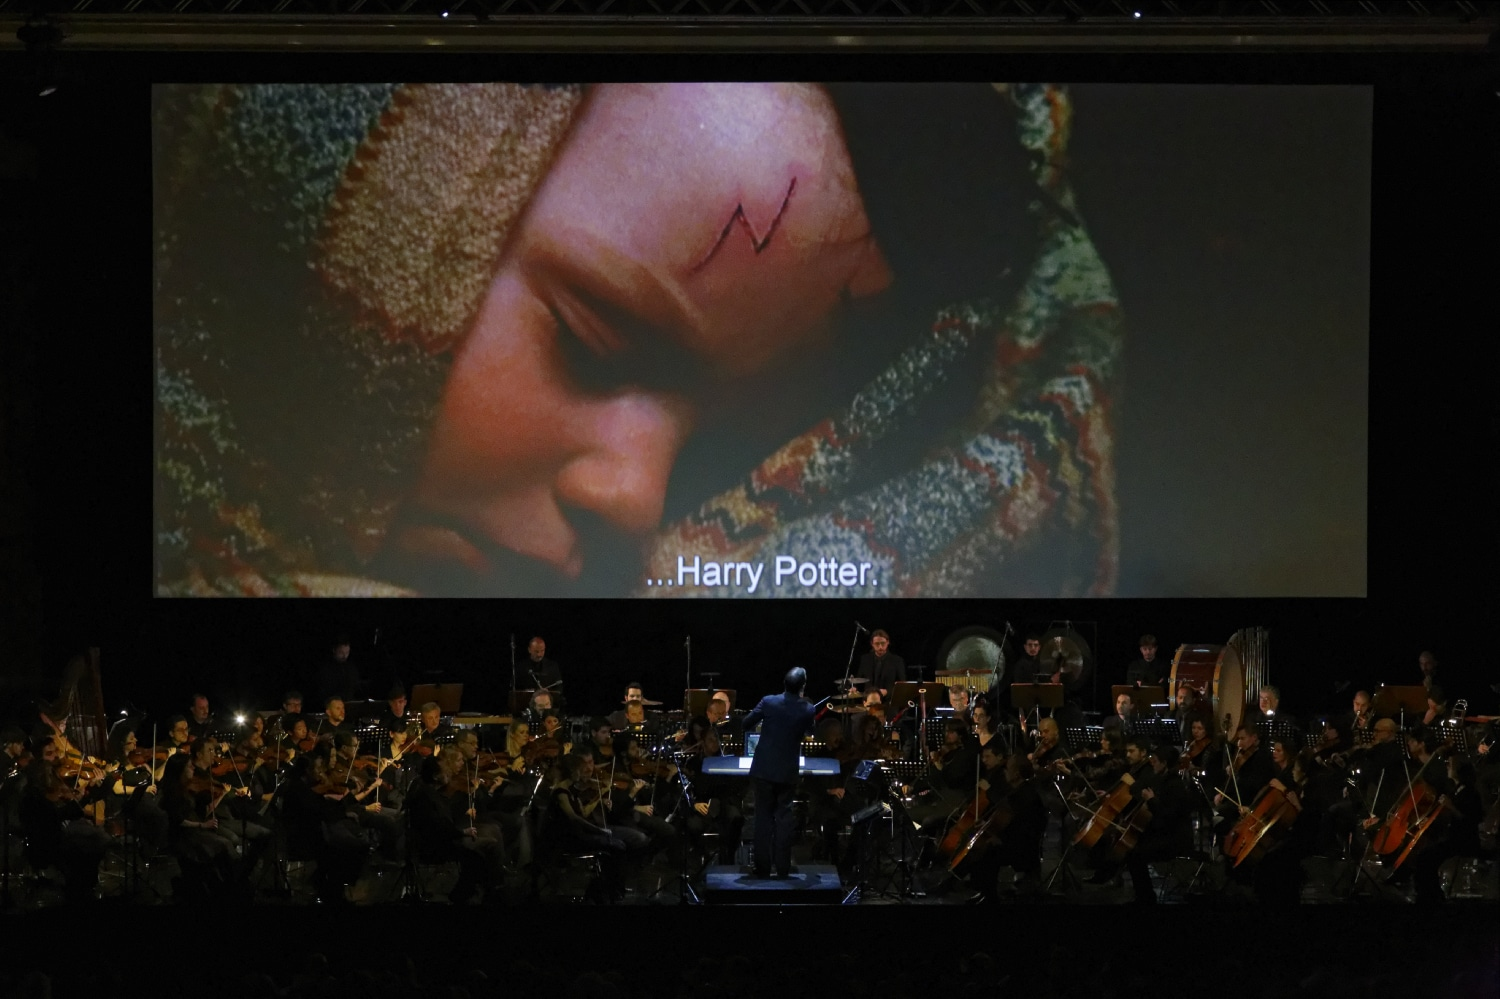 cine-concerto-harry-potter-auditorium-conciliazione-2